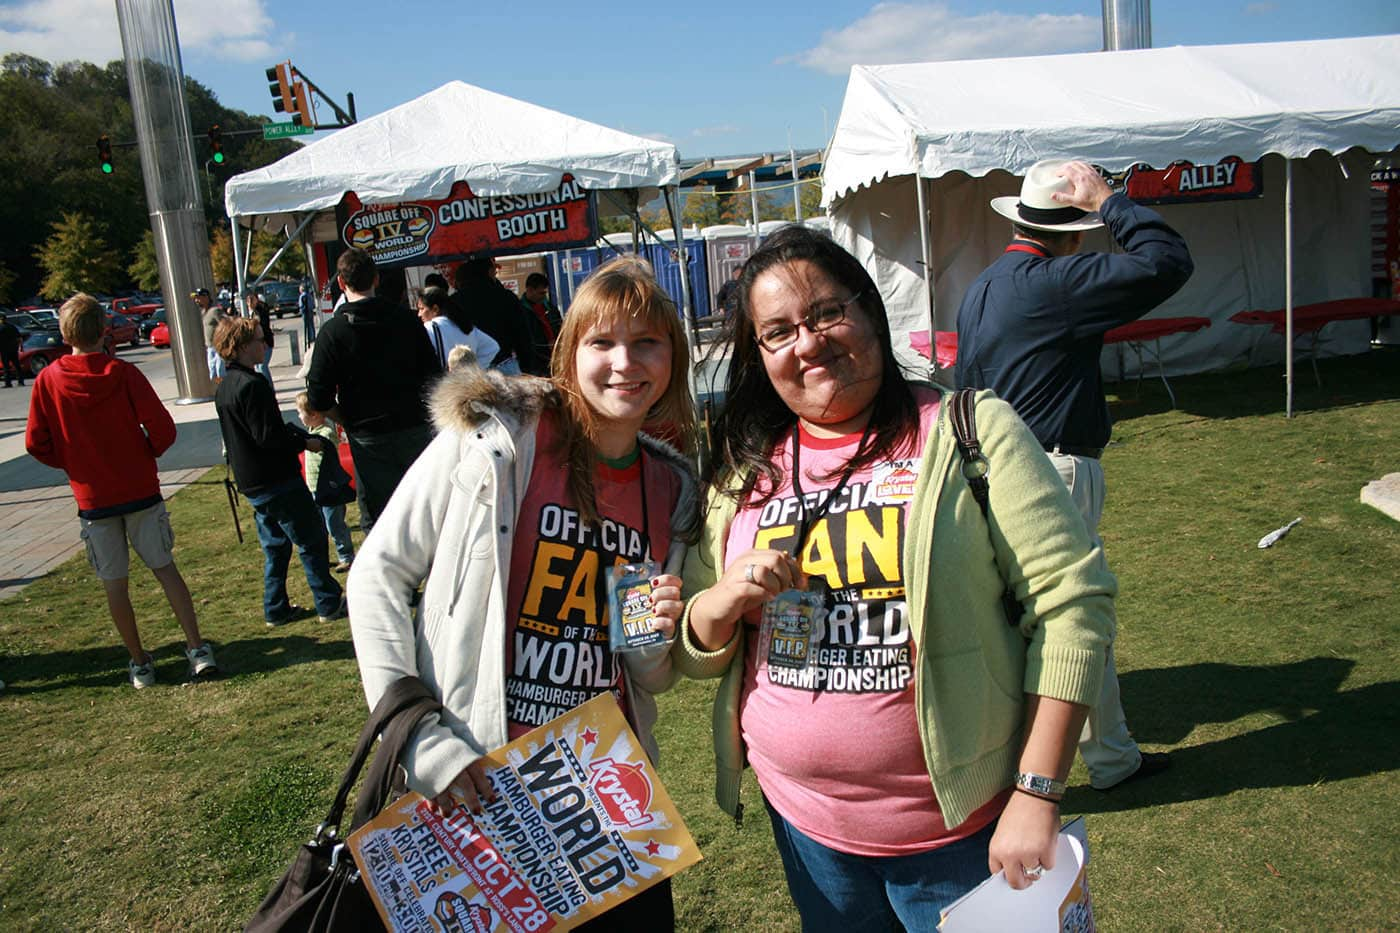 Me and Nadia at Krystal Square Off IV hamburger eating contest in Chattanooga, Tennessee.